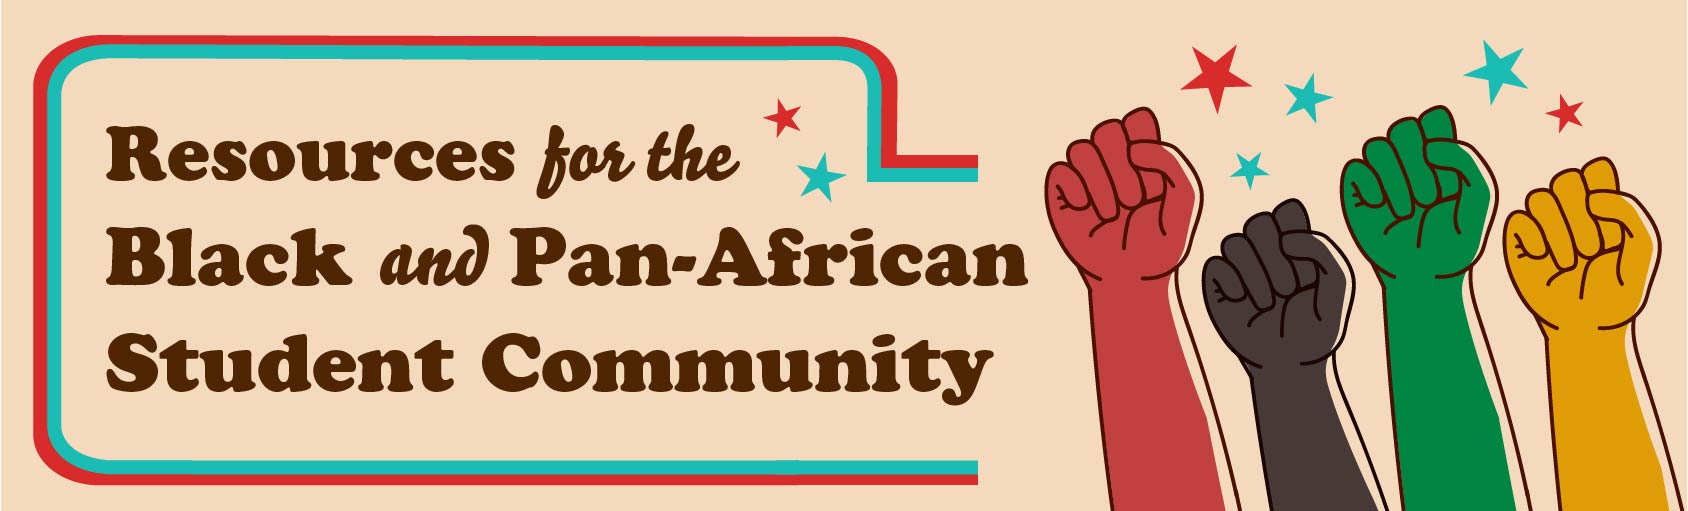 Resources for the Black and Pan-African Student Community